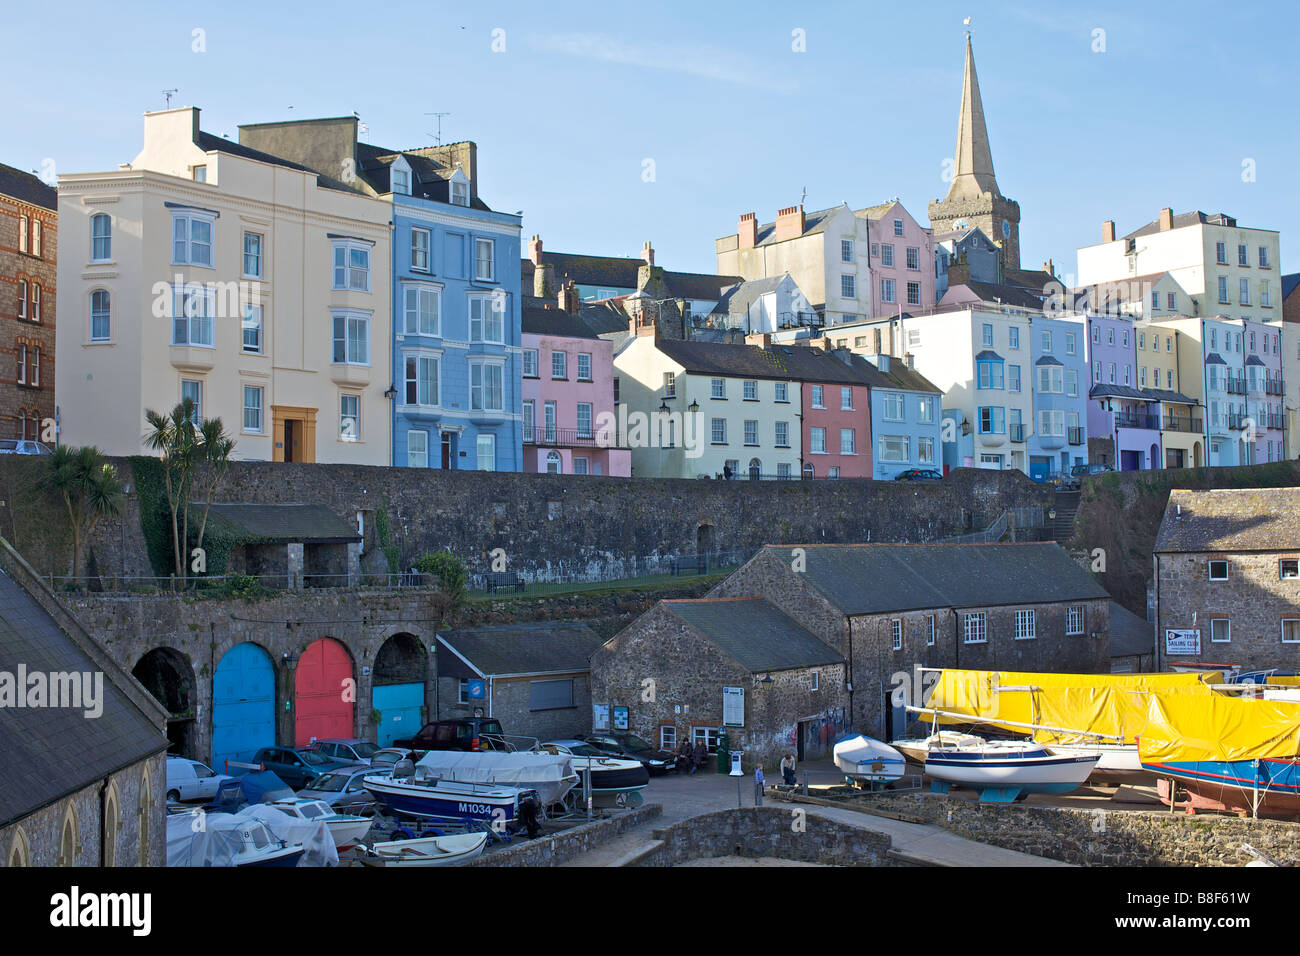 Tenby harbour in Wales - Stock Image